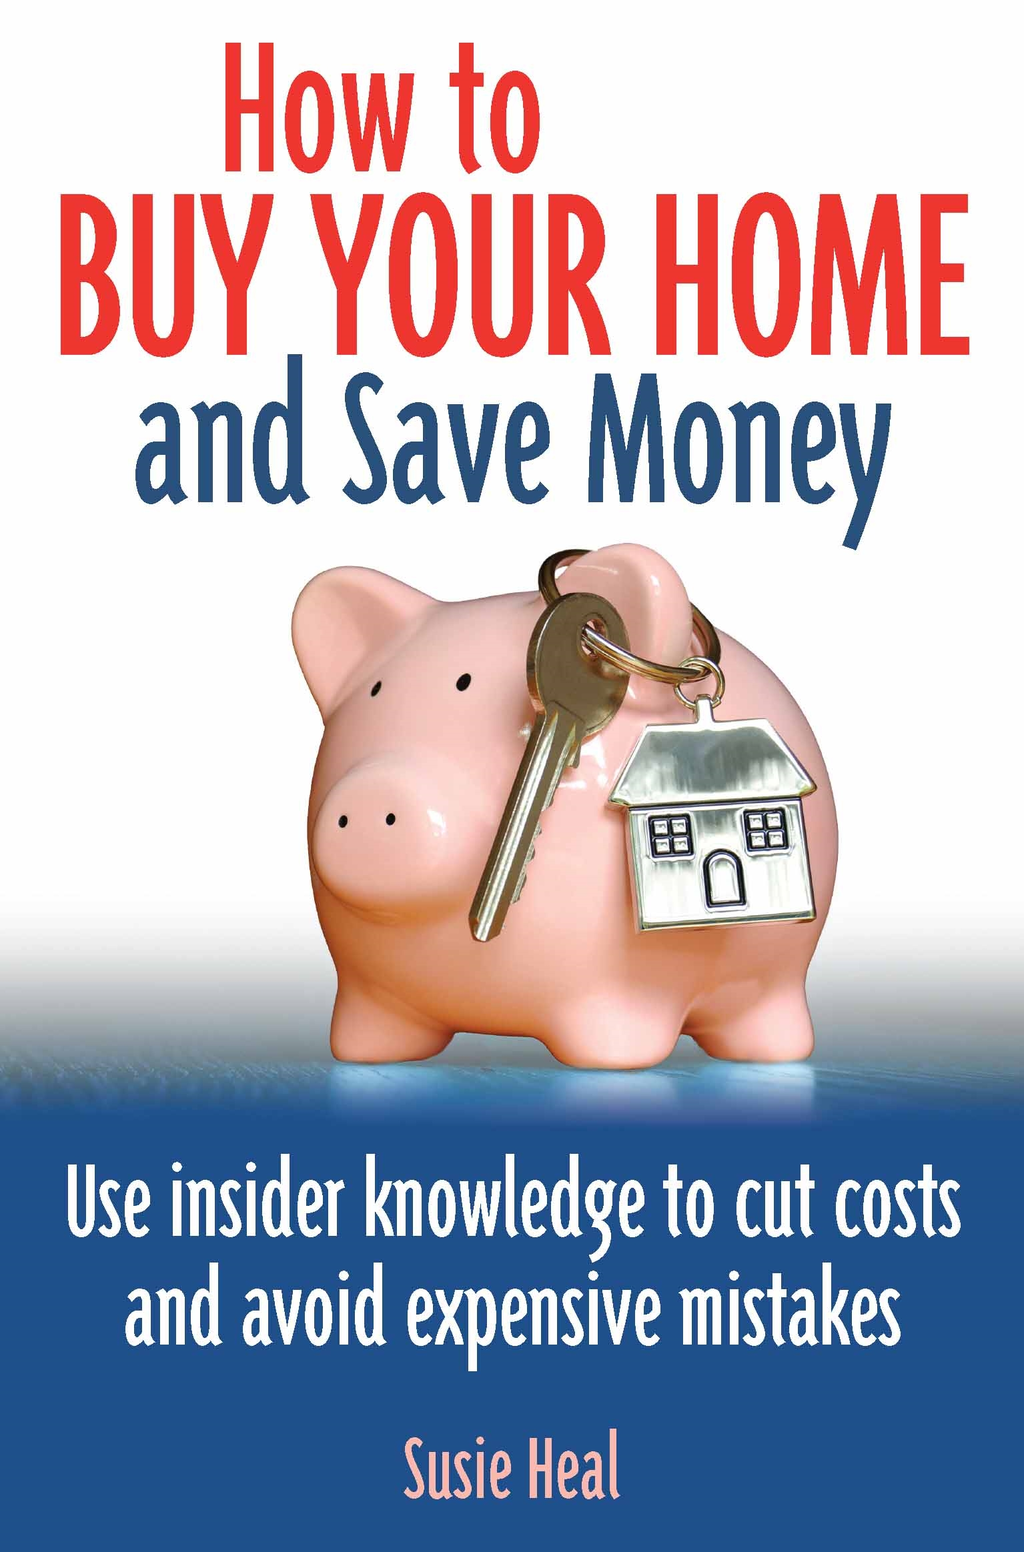 How To Buy Your Home and Save Money Use insider knowledge to cut costs and avoid expensive mistakes